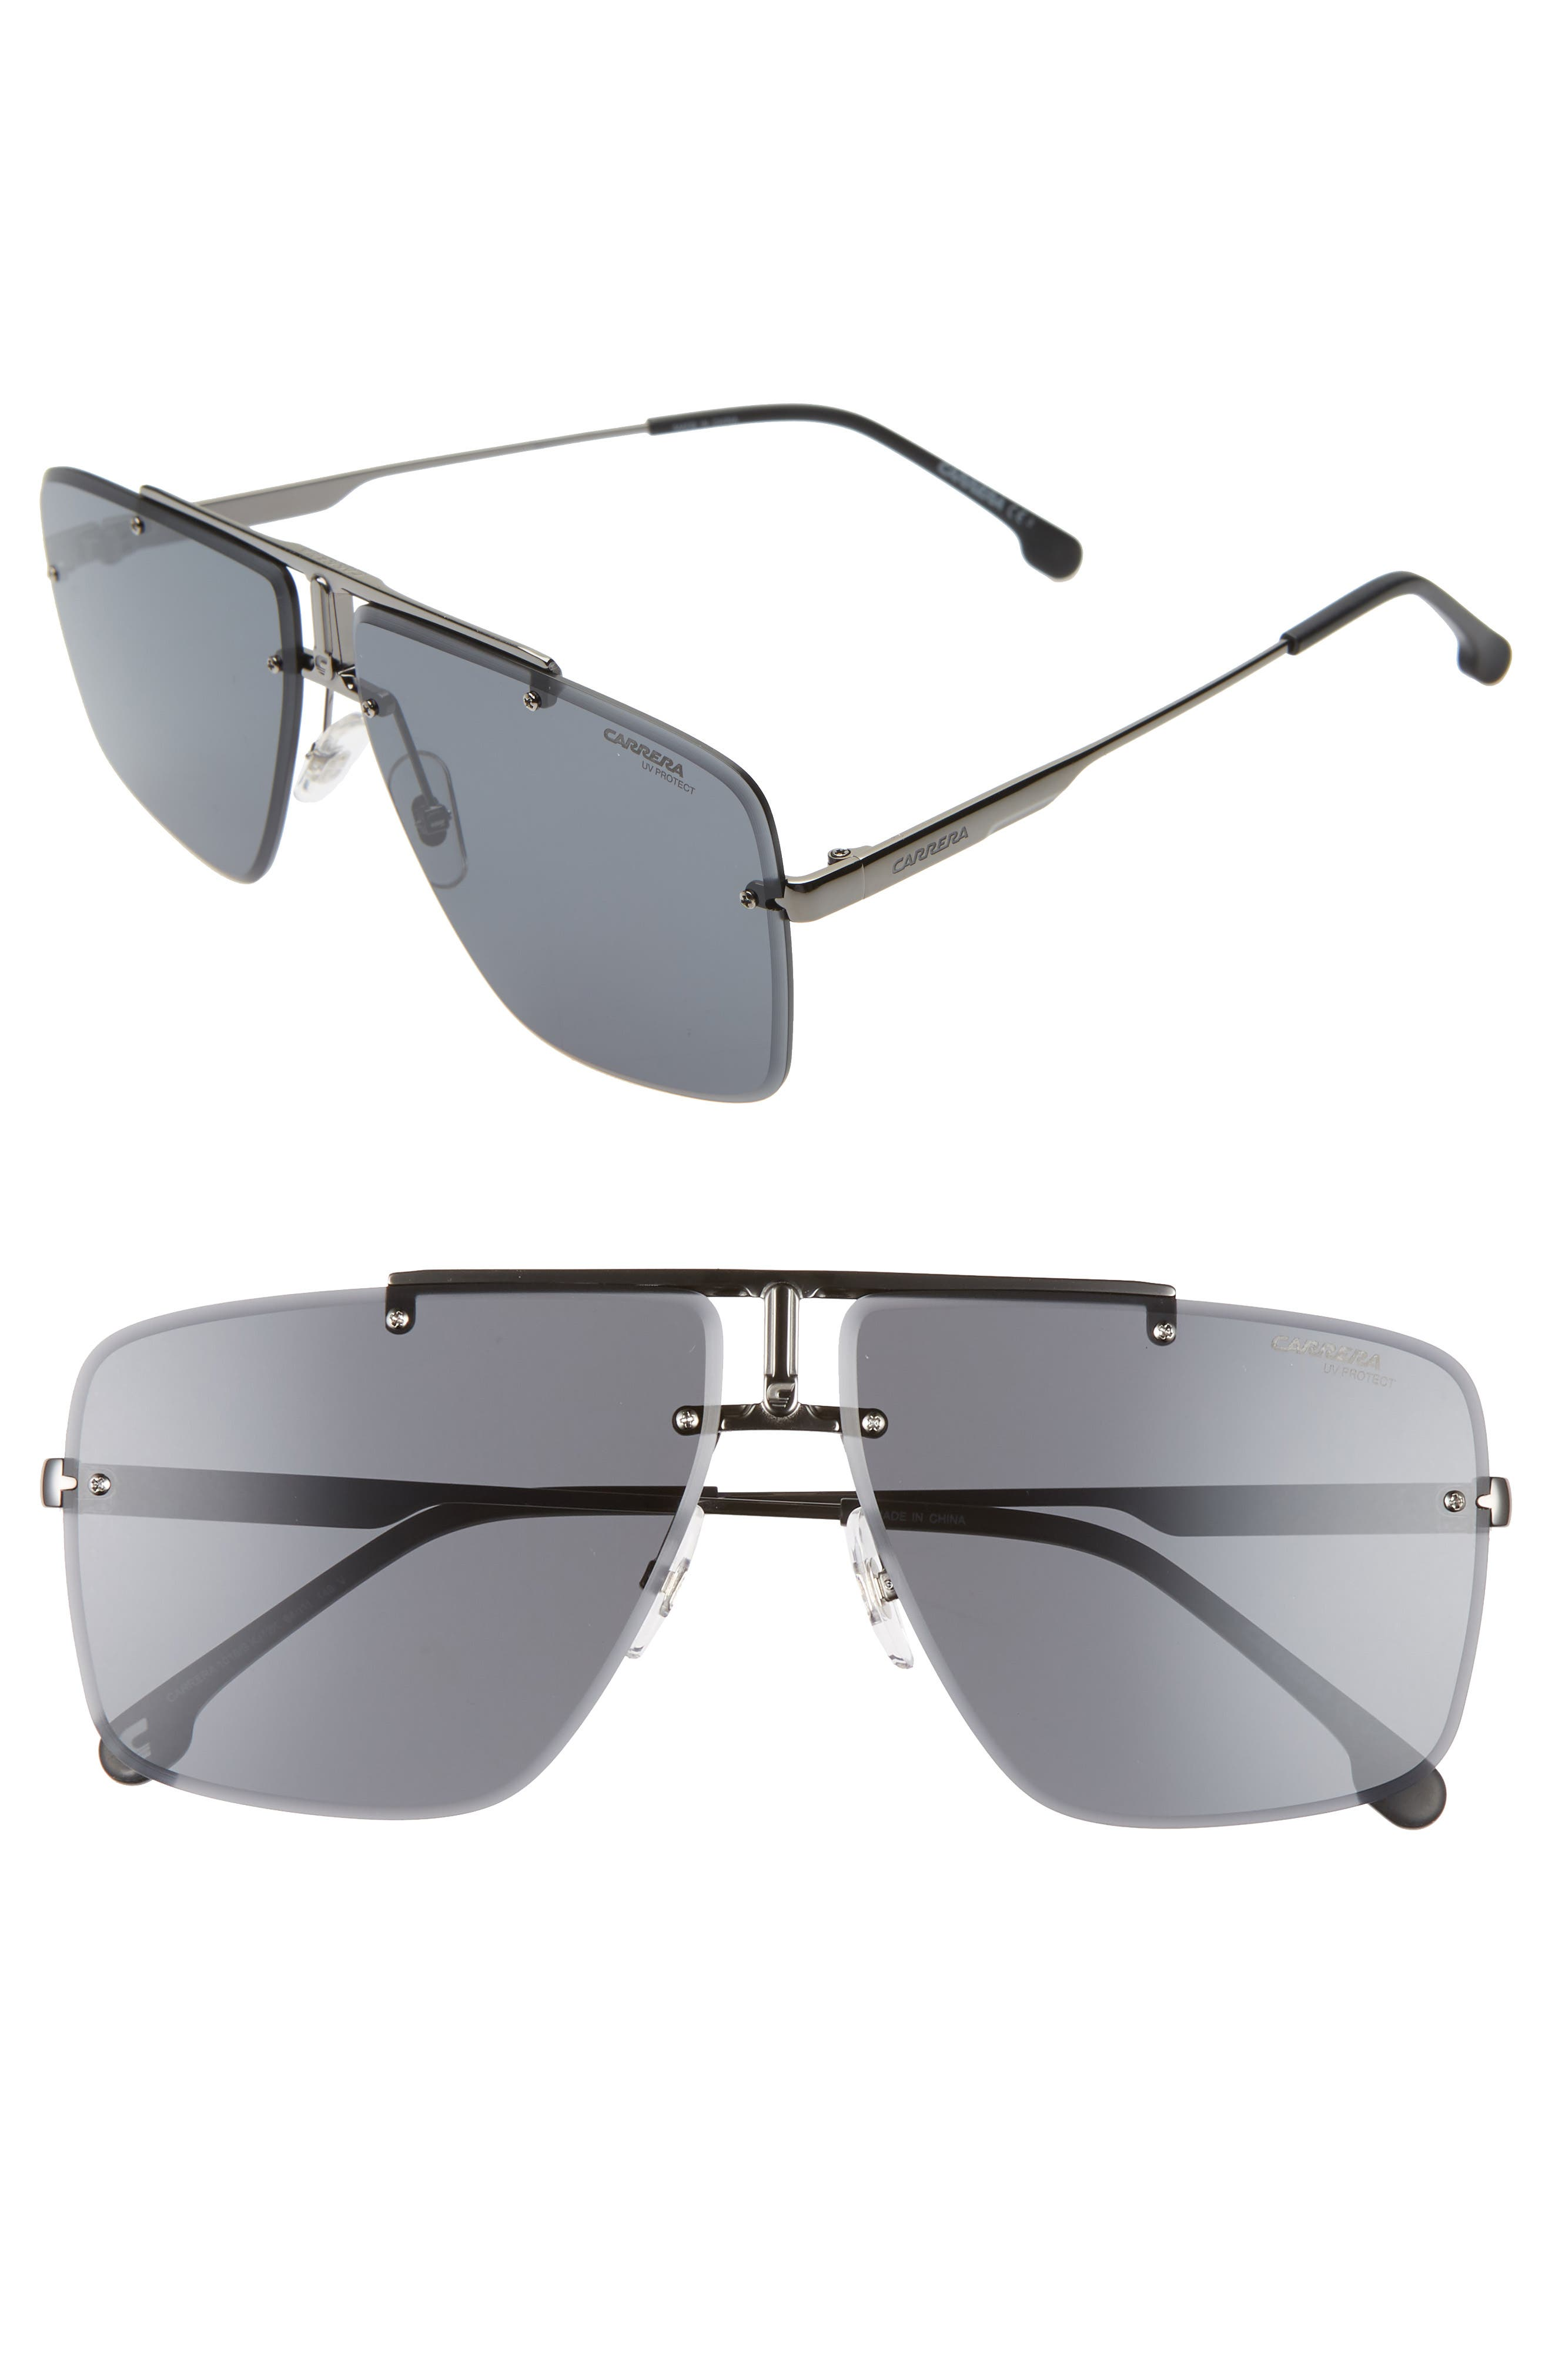 Carrera Eyewear Navigator Sunglasses - Dark Ruthenium